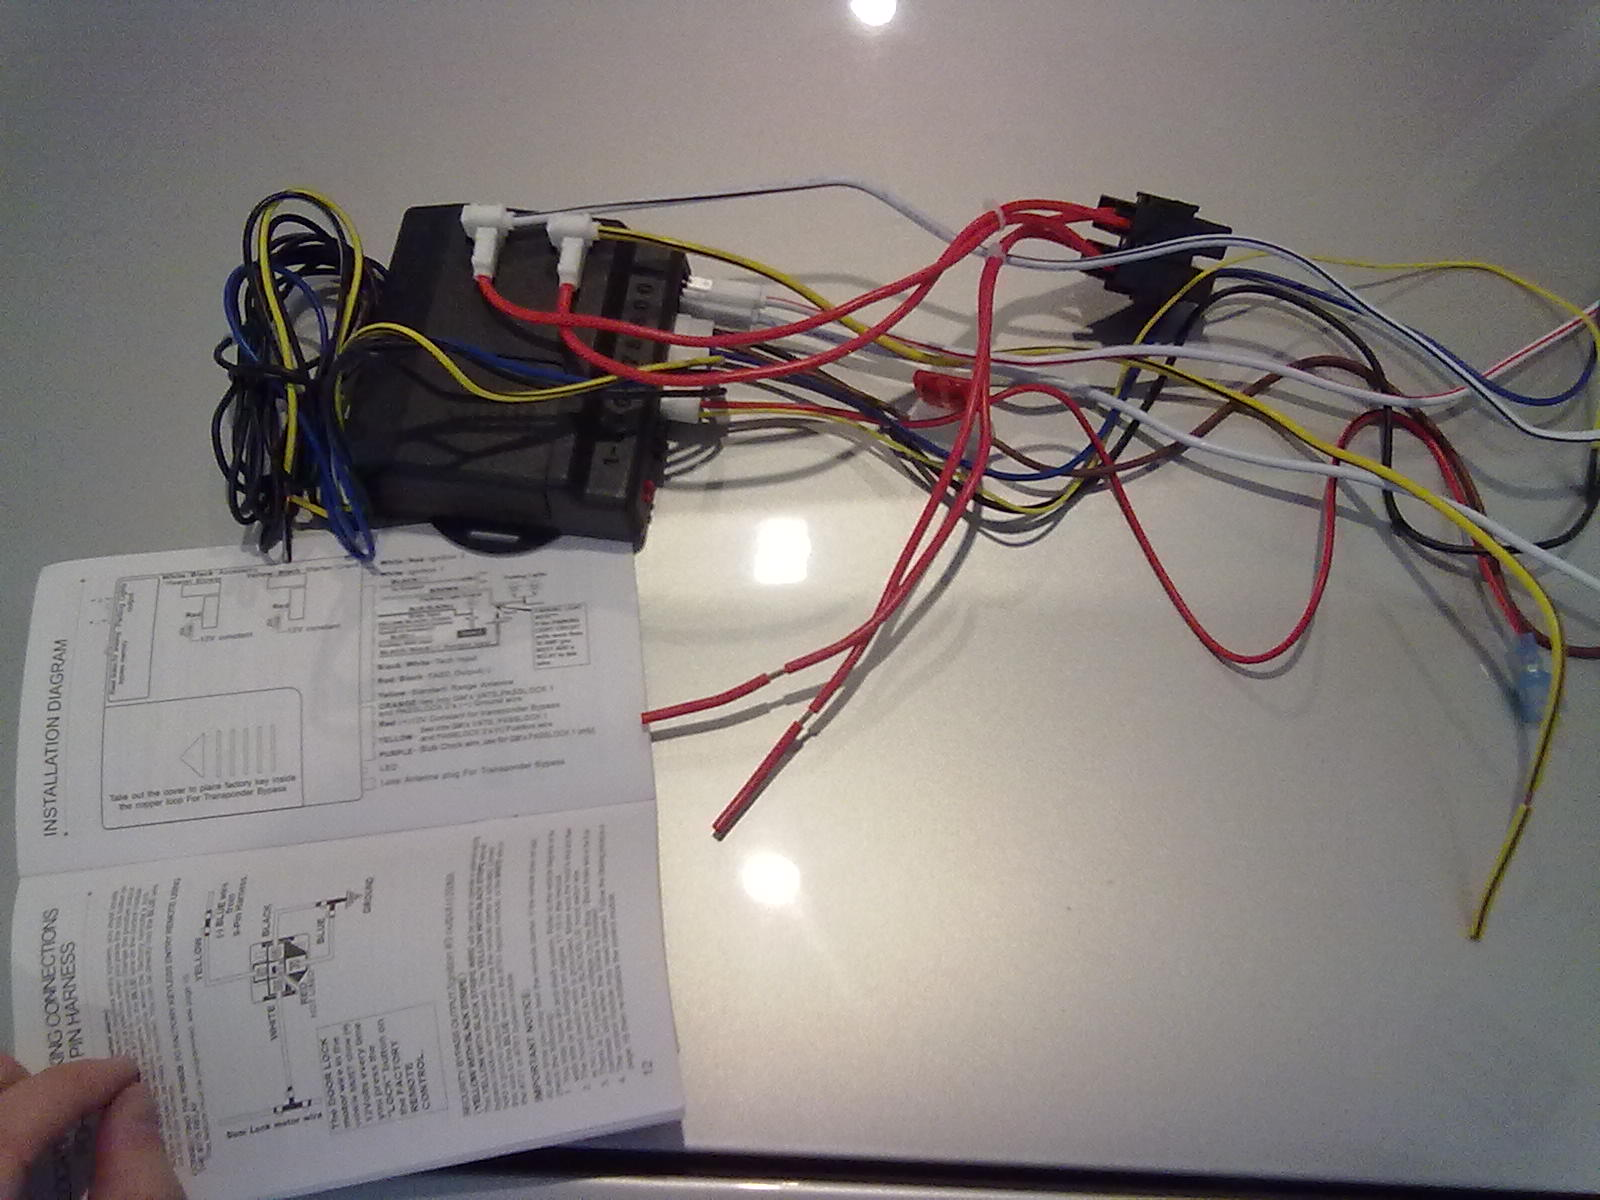 Bulldog Remote Starter Wiring Diagram Auto Diagrams Canada Rh Iworkedatraleigh Com Model 102 Vehicle